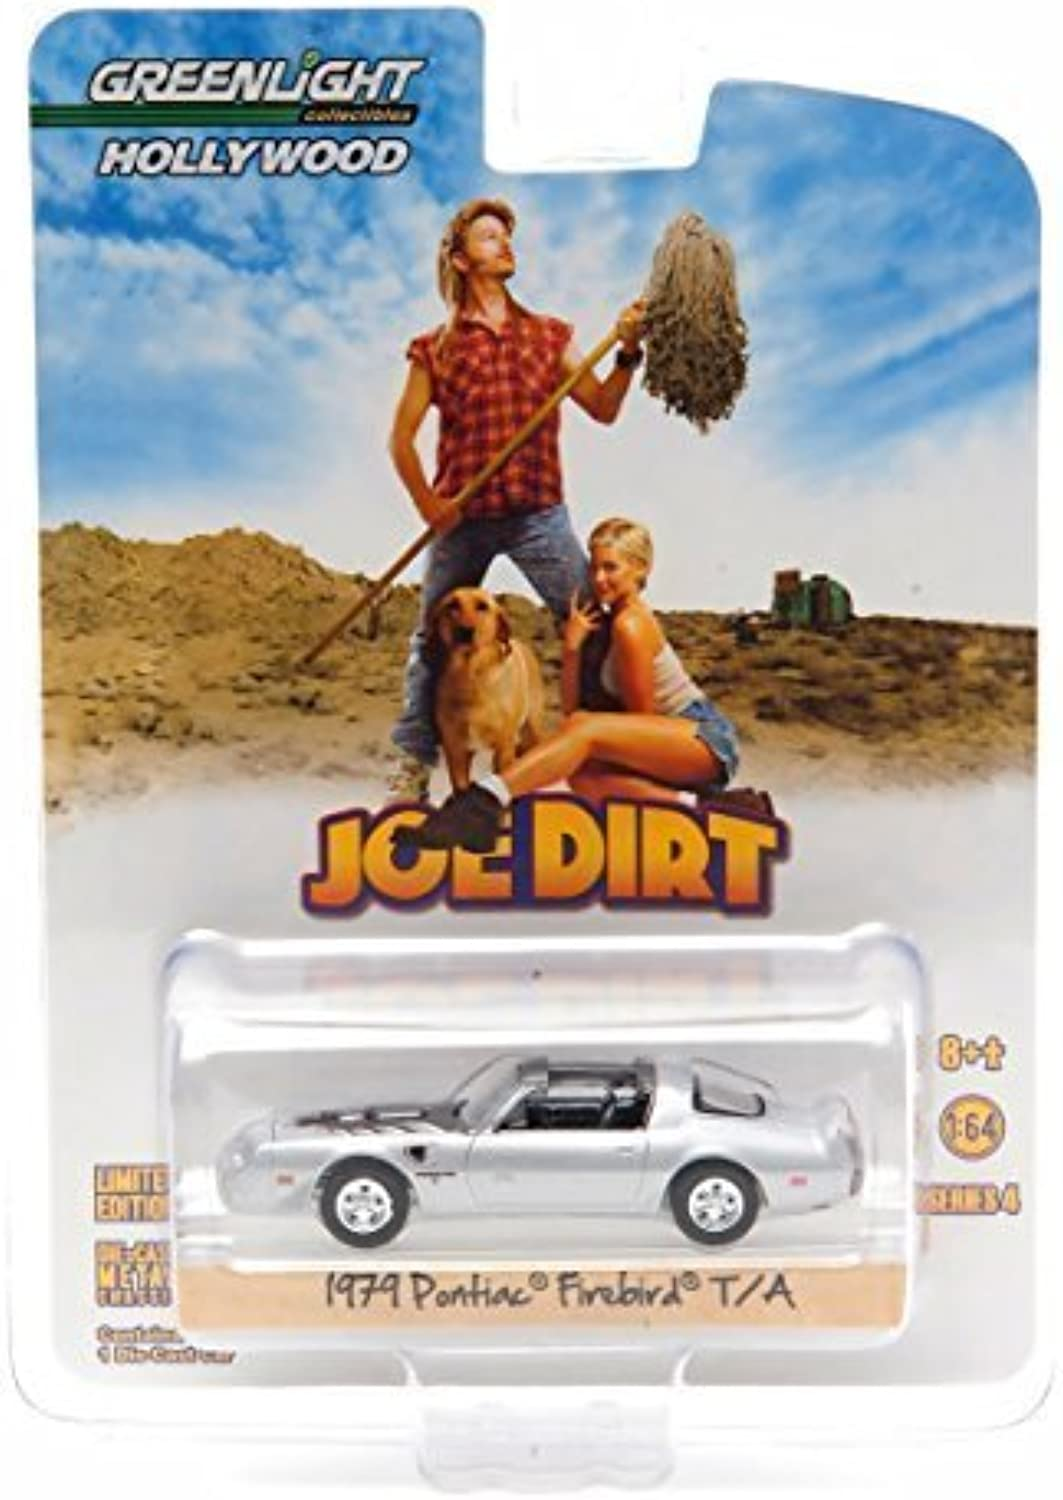 1979 PONTIAC FIREBIRD TRANS AM from the classic film JOE DIRT  Hollywood Greatest Hits  2015 Greenlight Collectibles 1 64 Scale Limited Edition DieCast Vehicle by GL Hollywood